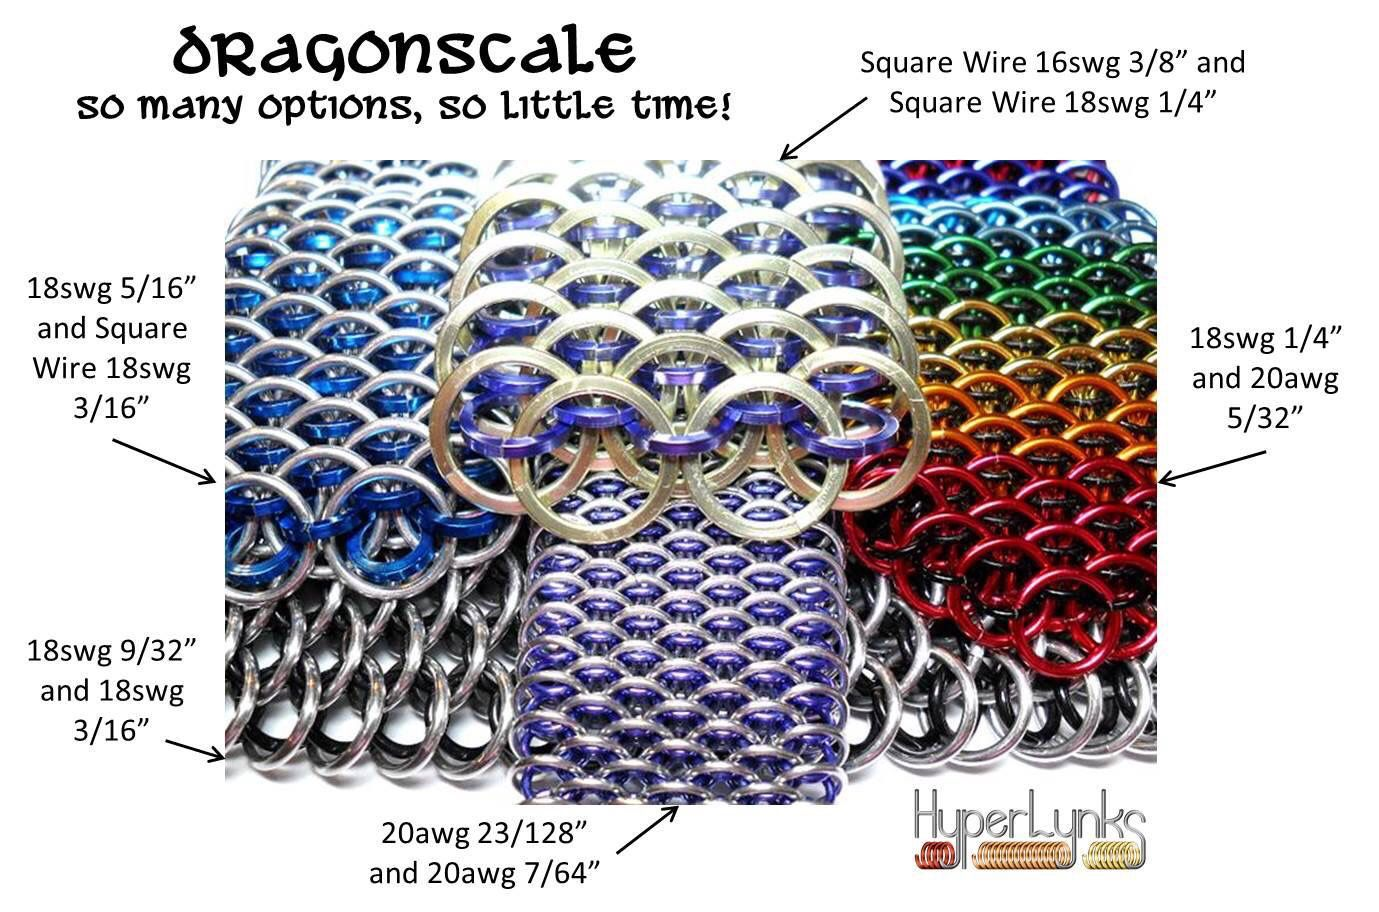 Dragonscale by hyperlinks | Jewelry-Chain, Chain, Chain, Chain ...